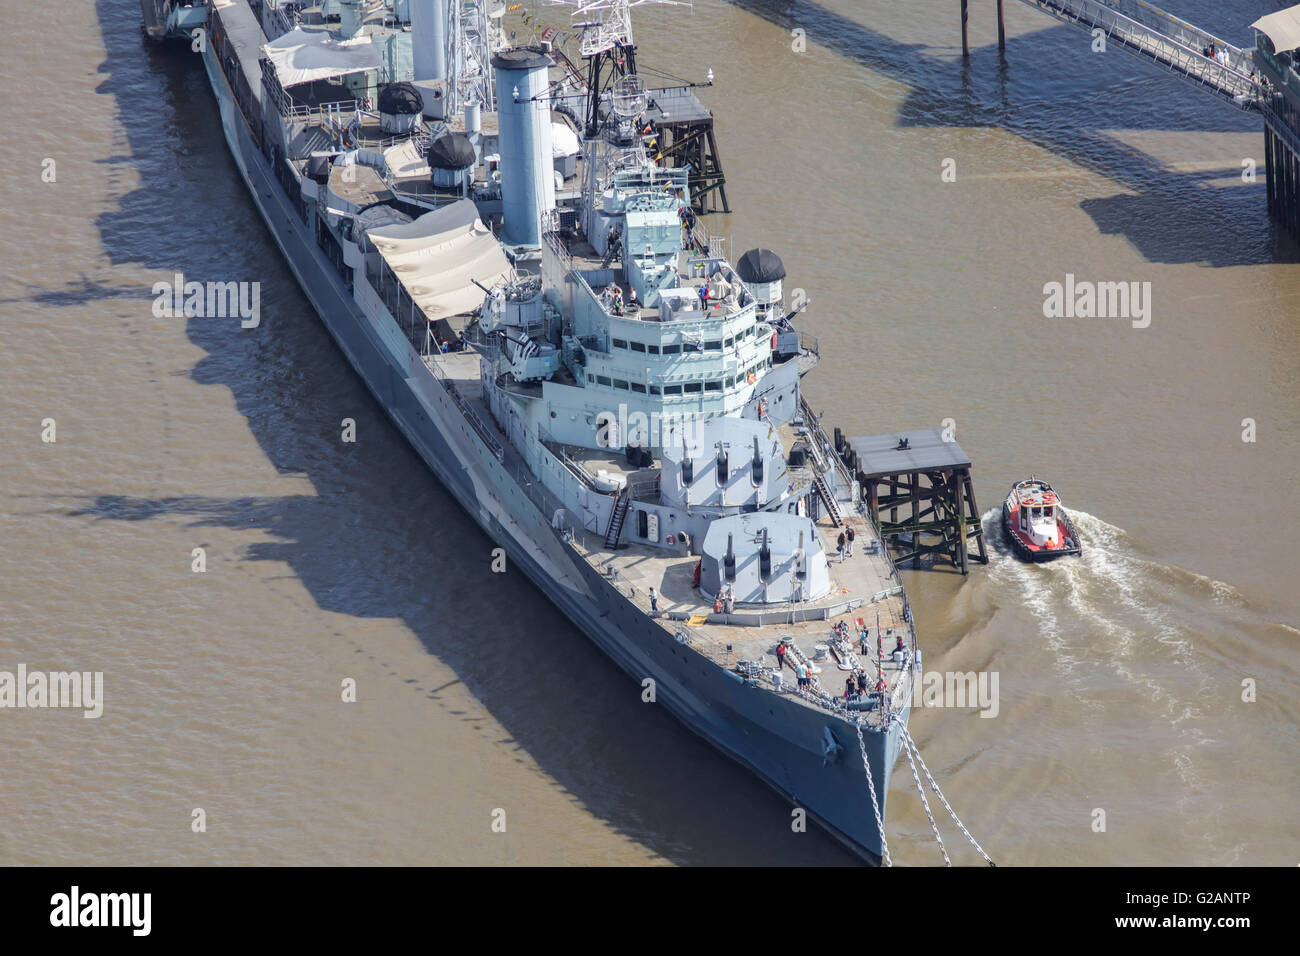 An aerial view of HMS Belfast a former Royal Navy light cruiser and now a London tourist attraction - Stock Image